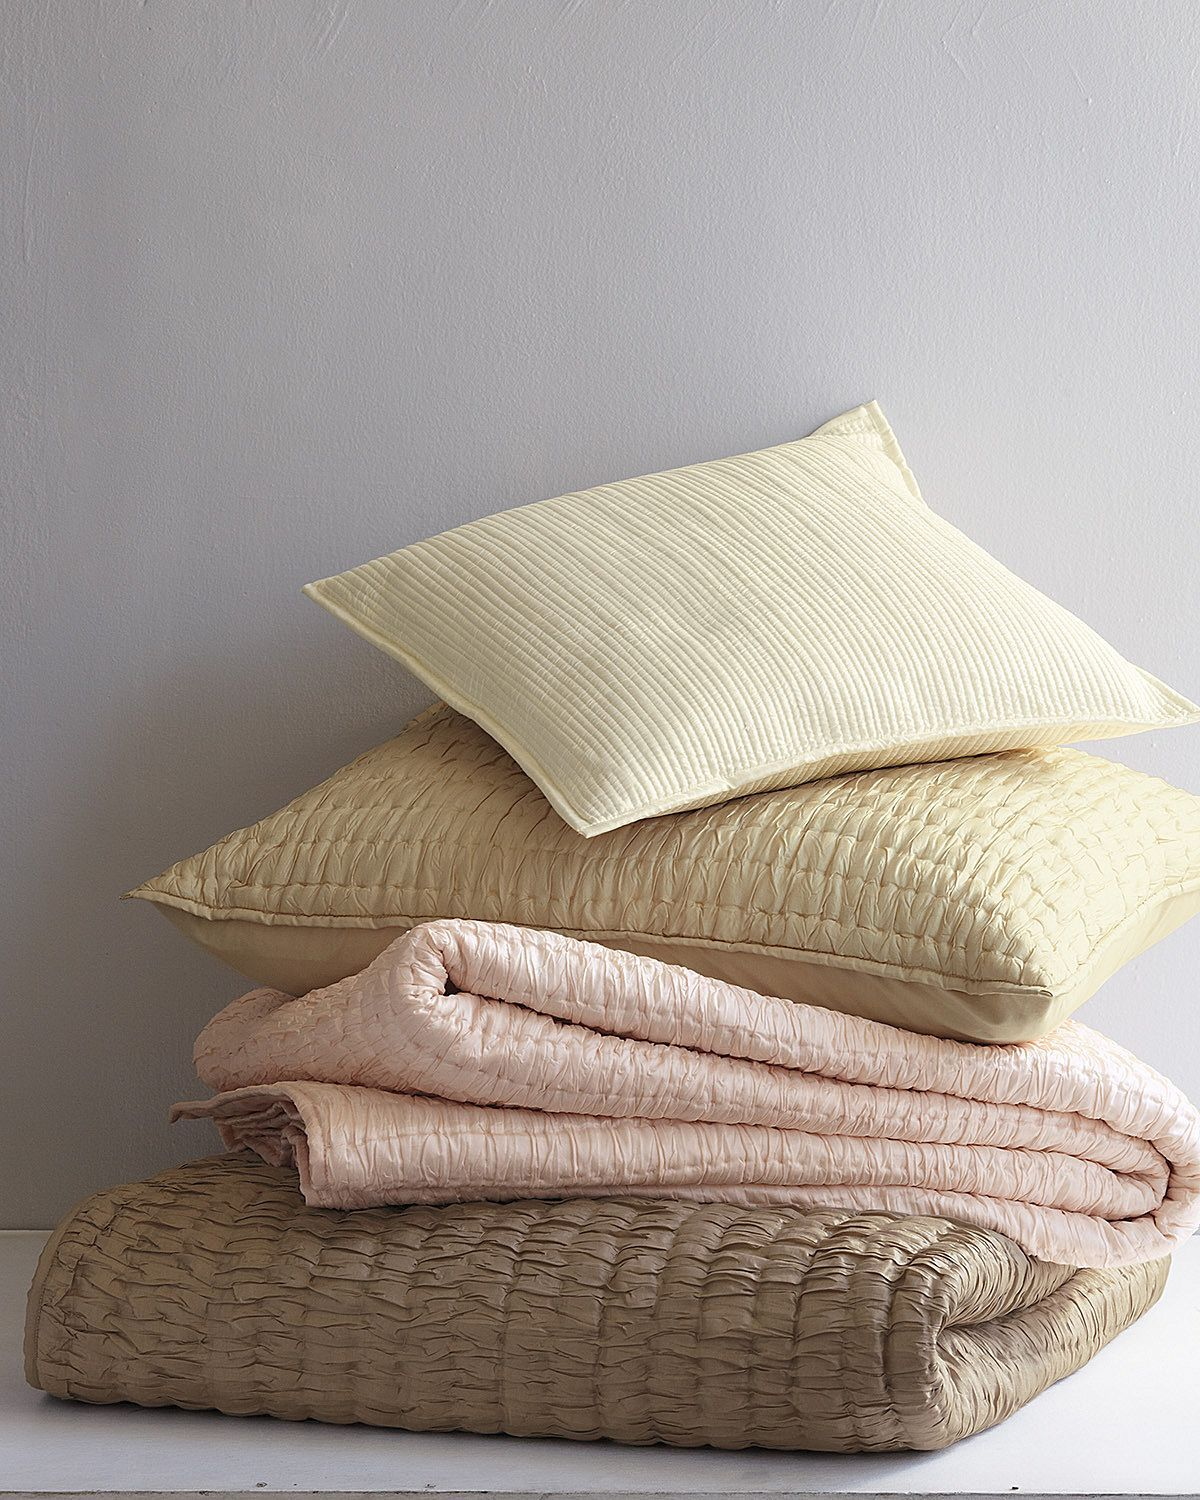 Eileen fisher seasonless silk comforter -  Garnet Hill Eileen Fisher Crushed Silk Quilt Collection Available Only At Garnet Hill Http Fisher Seasonlessseasonless Silkcomforter